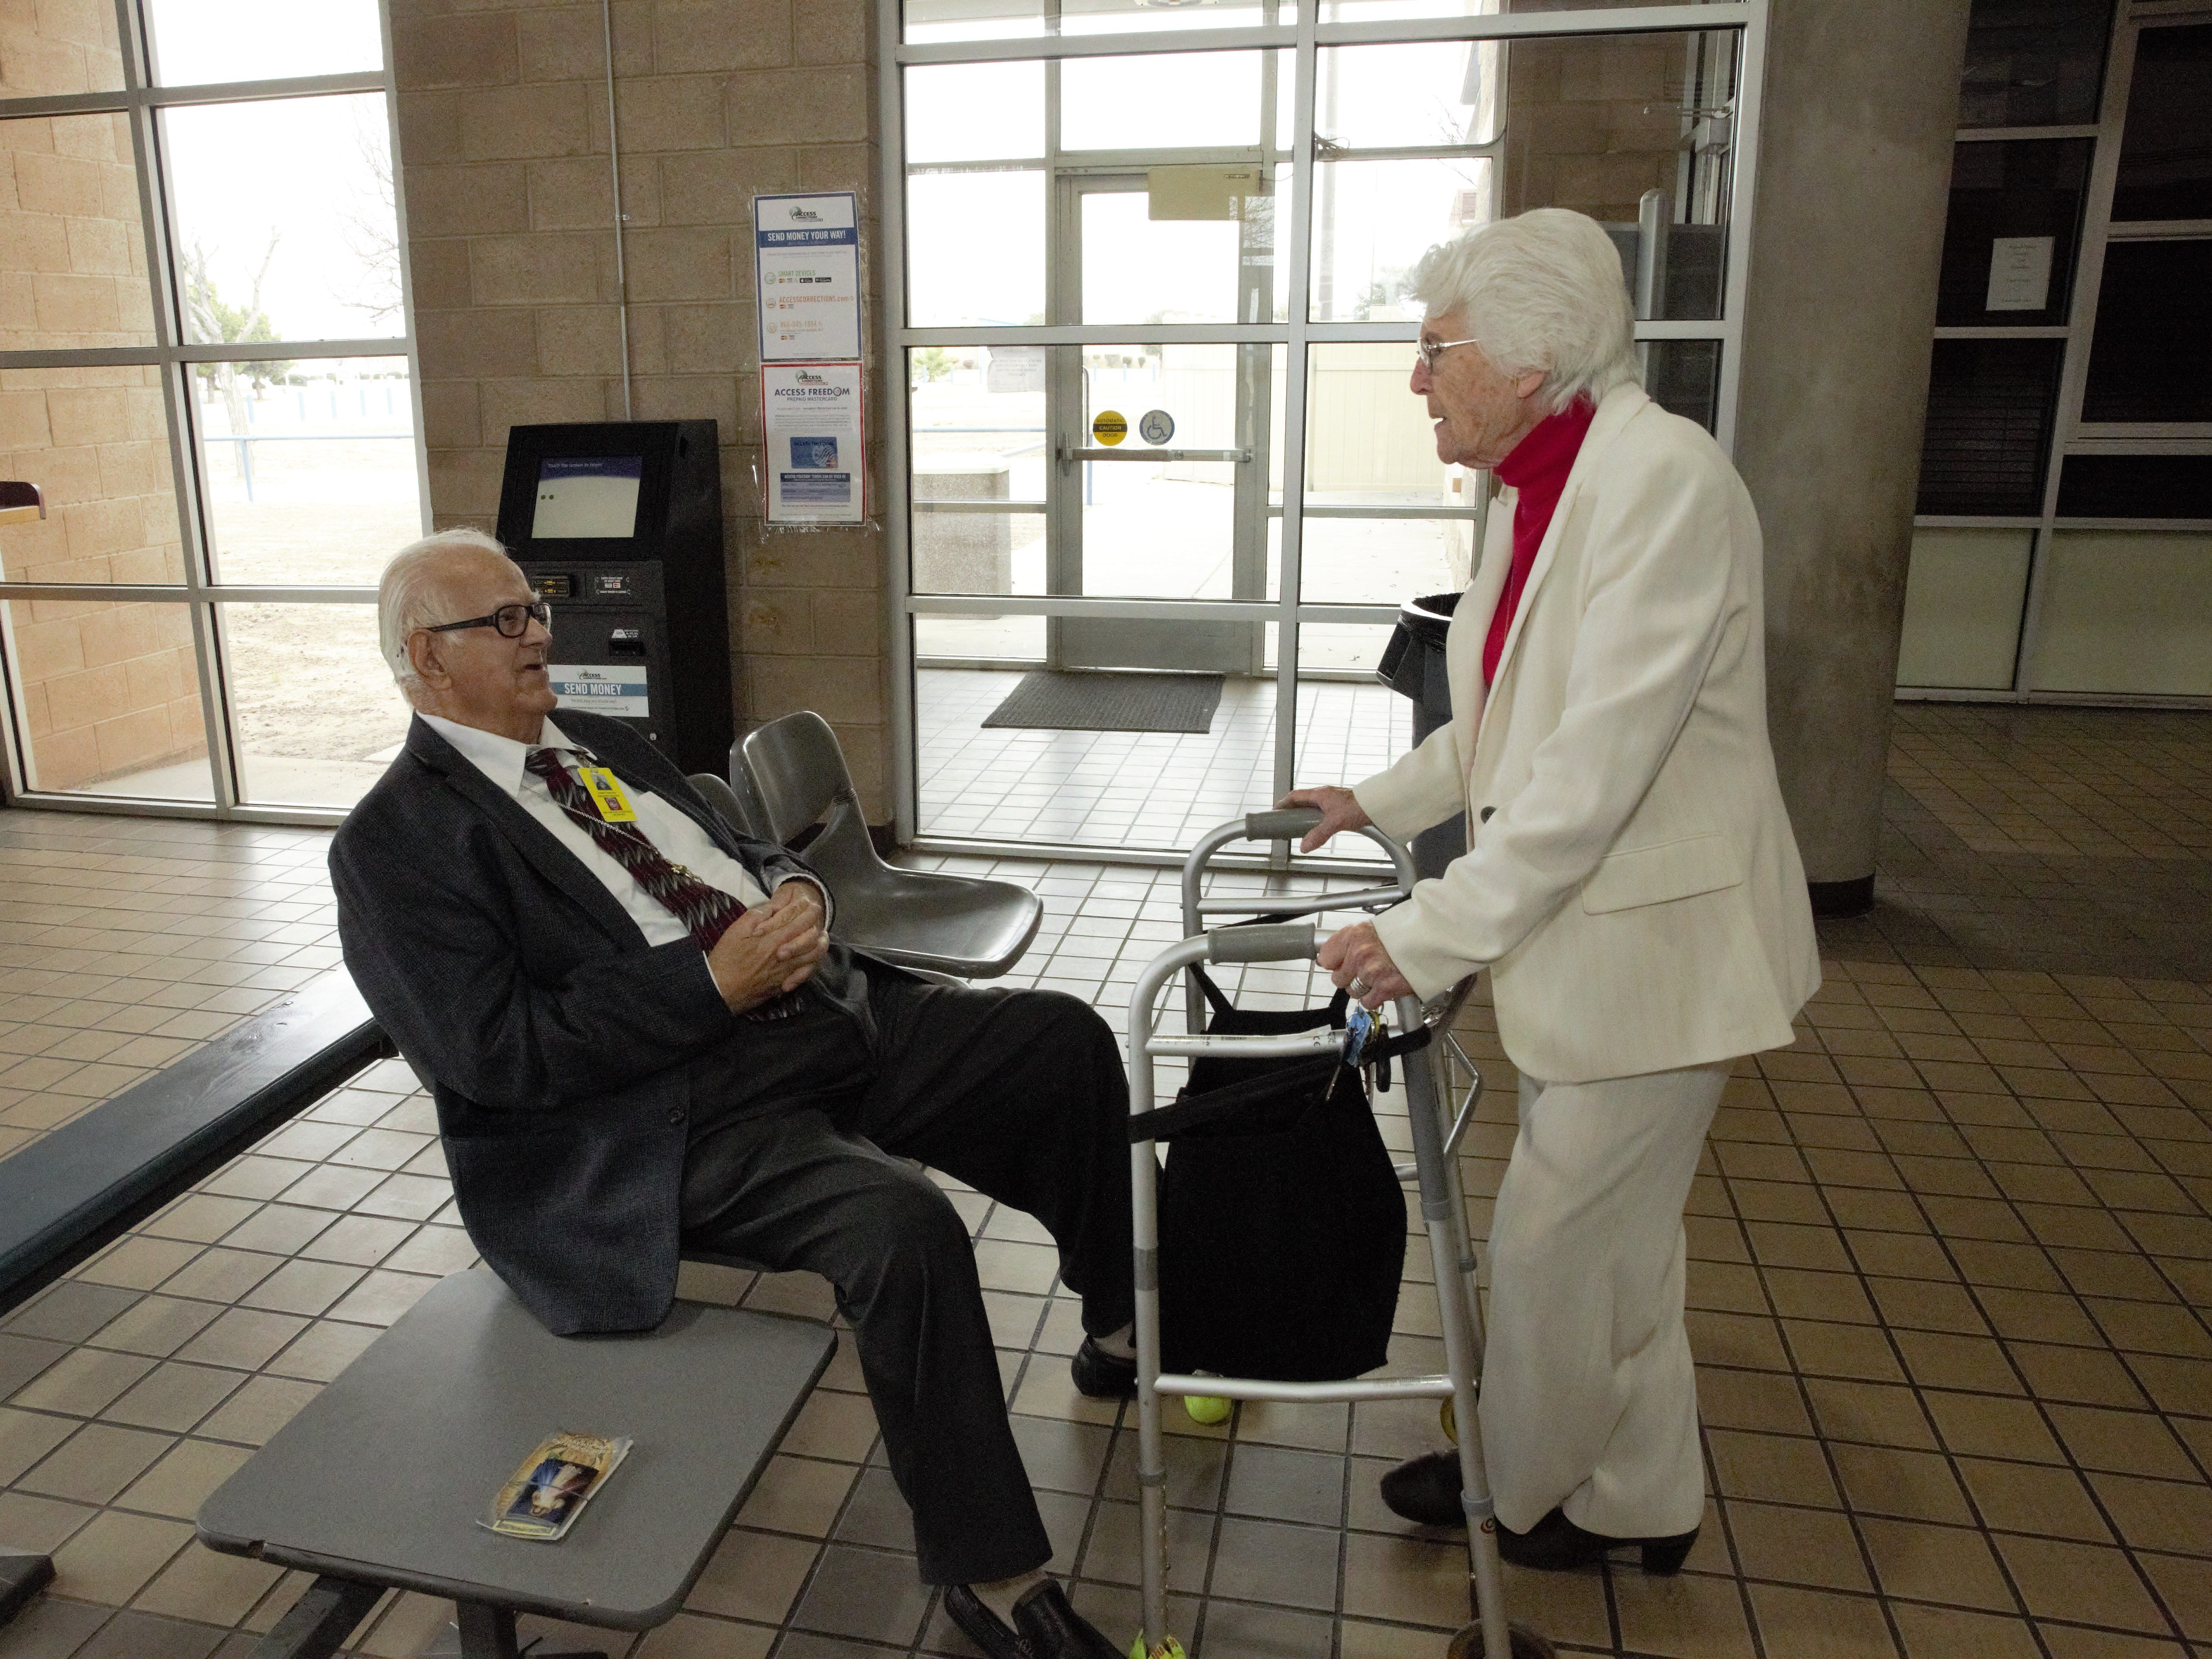 Volunteer Frank Ontiveros, left, and Sister Marie-Paule Willem chat on Tuesday, Dec. 25, 2018 in the lobby of the Doña Ana County Detention Center prior to visiting inmates for Christmas Day.